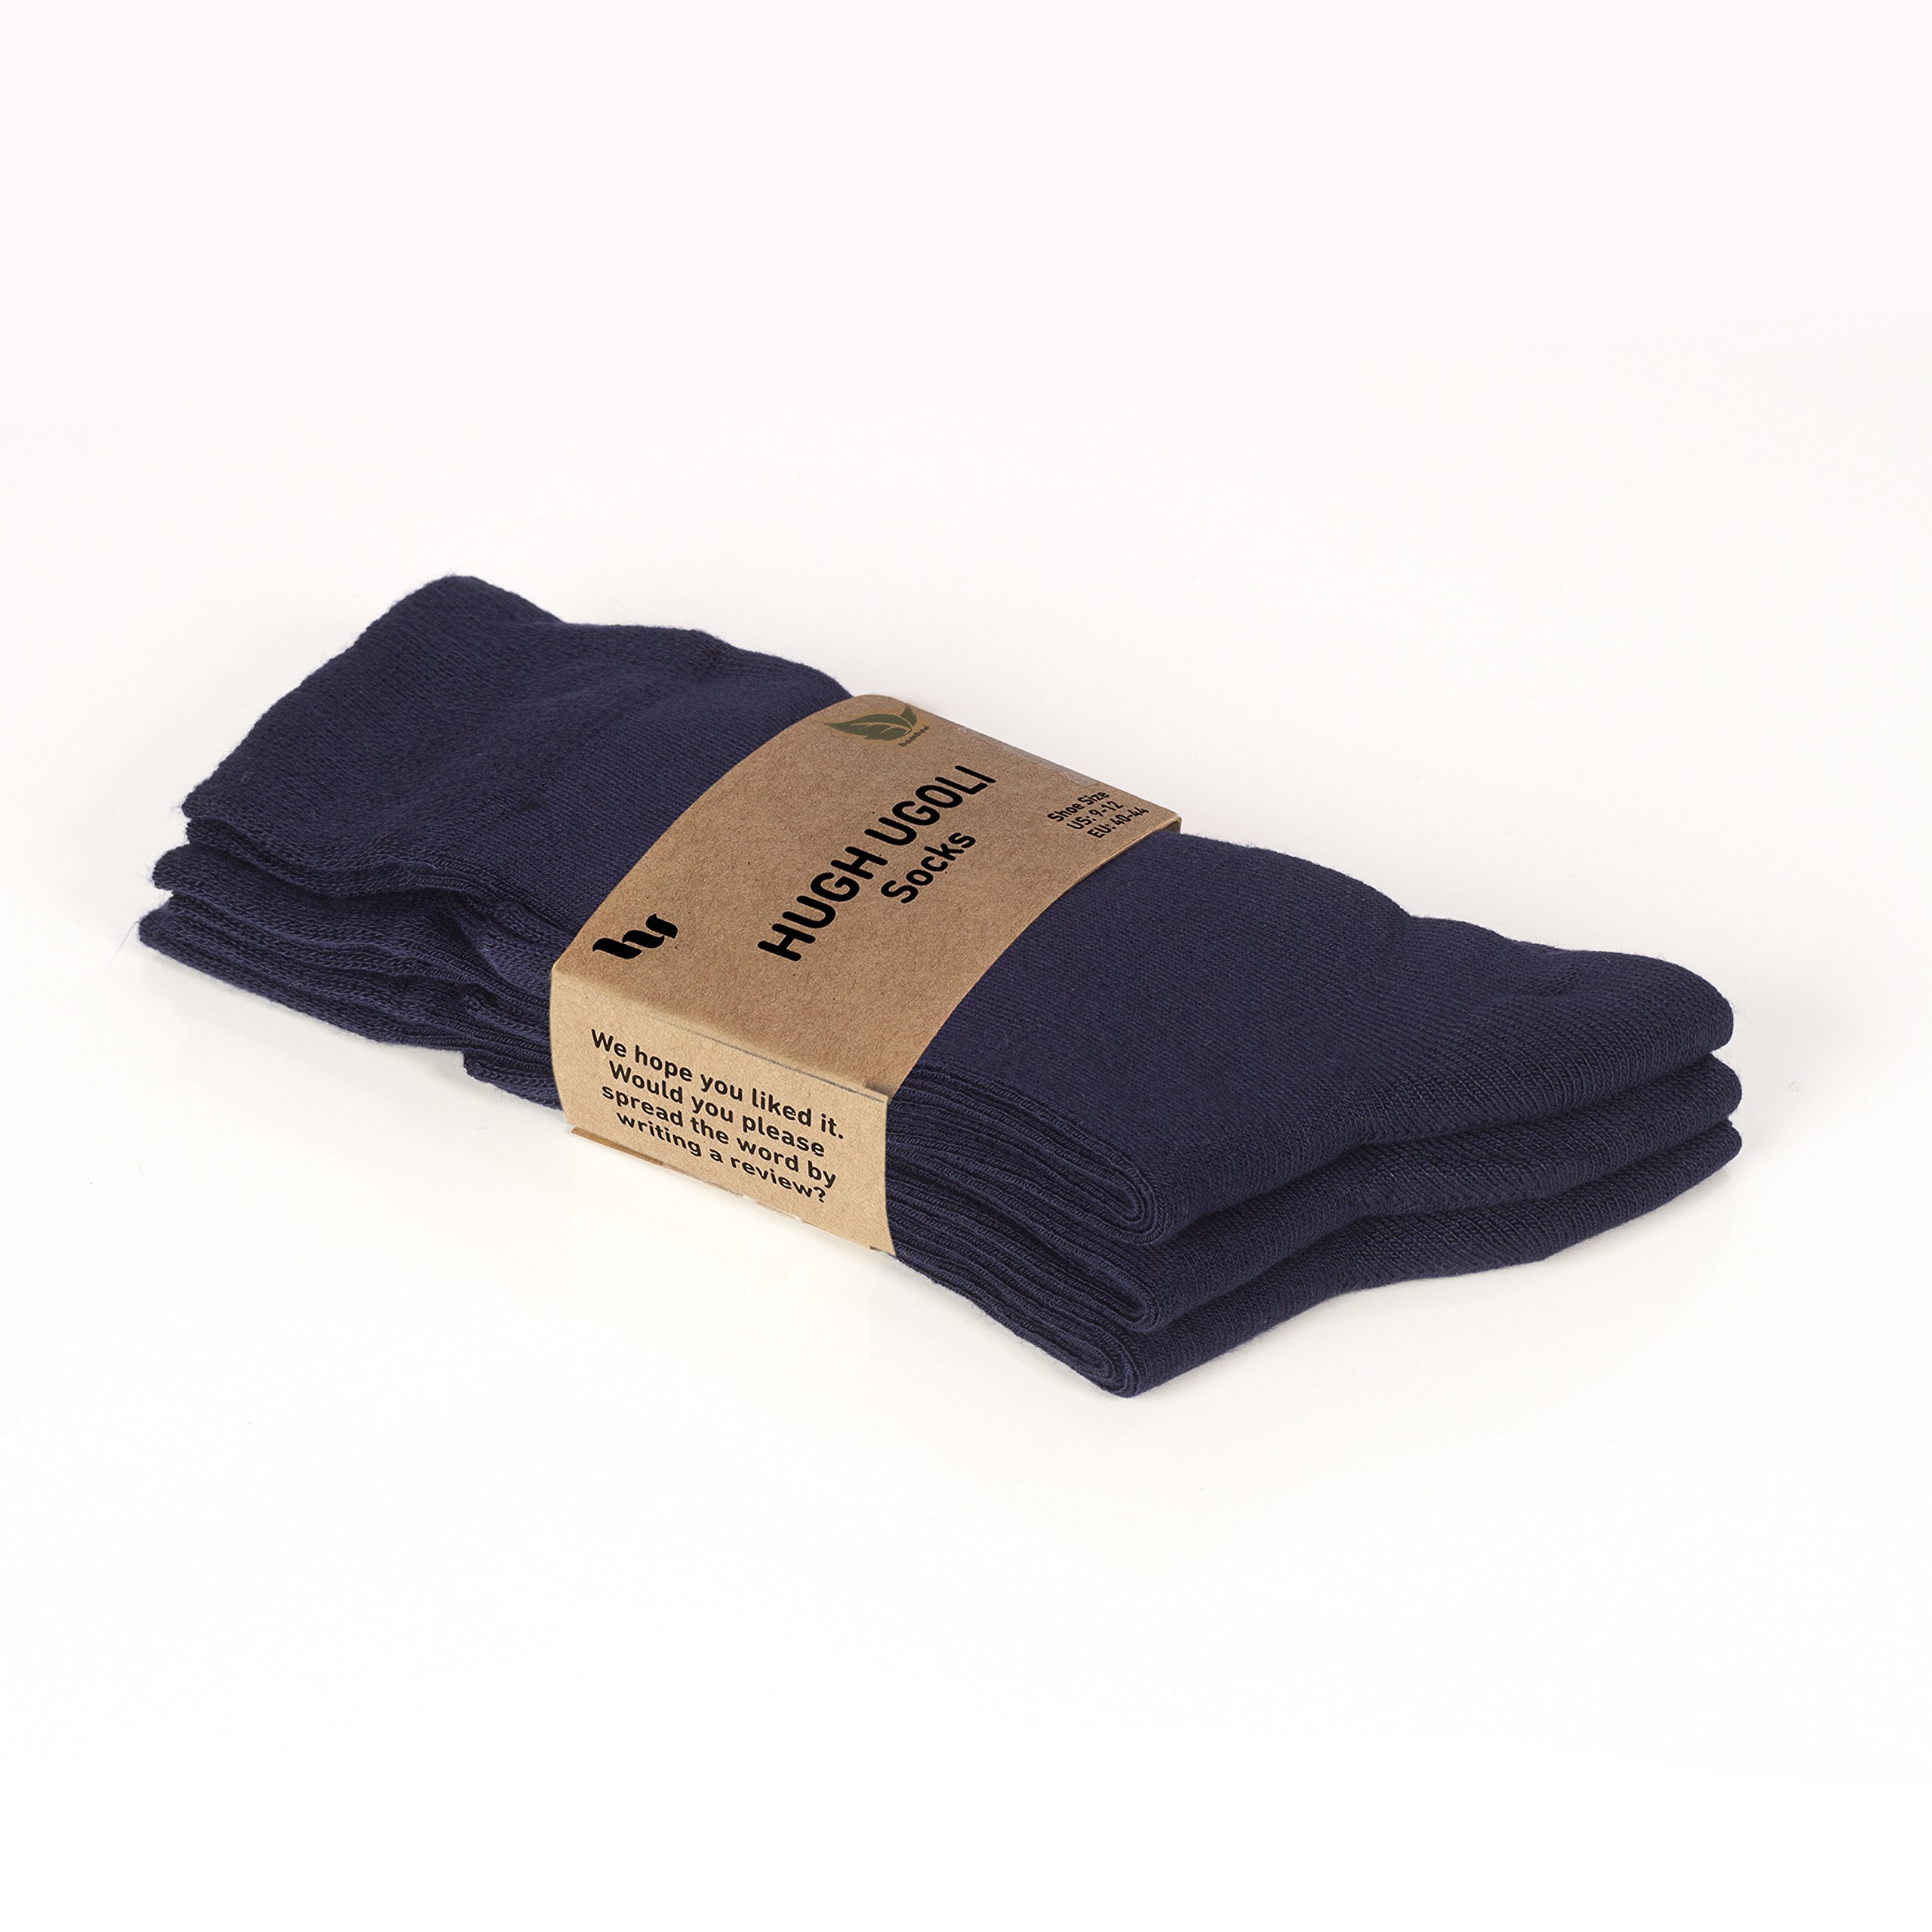 Hugh Ugoli Women's Dress Crew Socks Bamboo Business Casual Comfort Seam (Shoe size: 6-9, Navy Blue) by Hu Socks (Image #4)